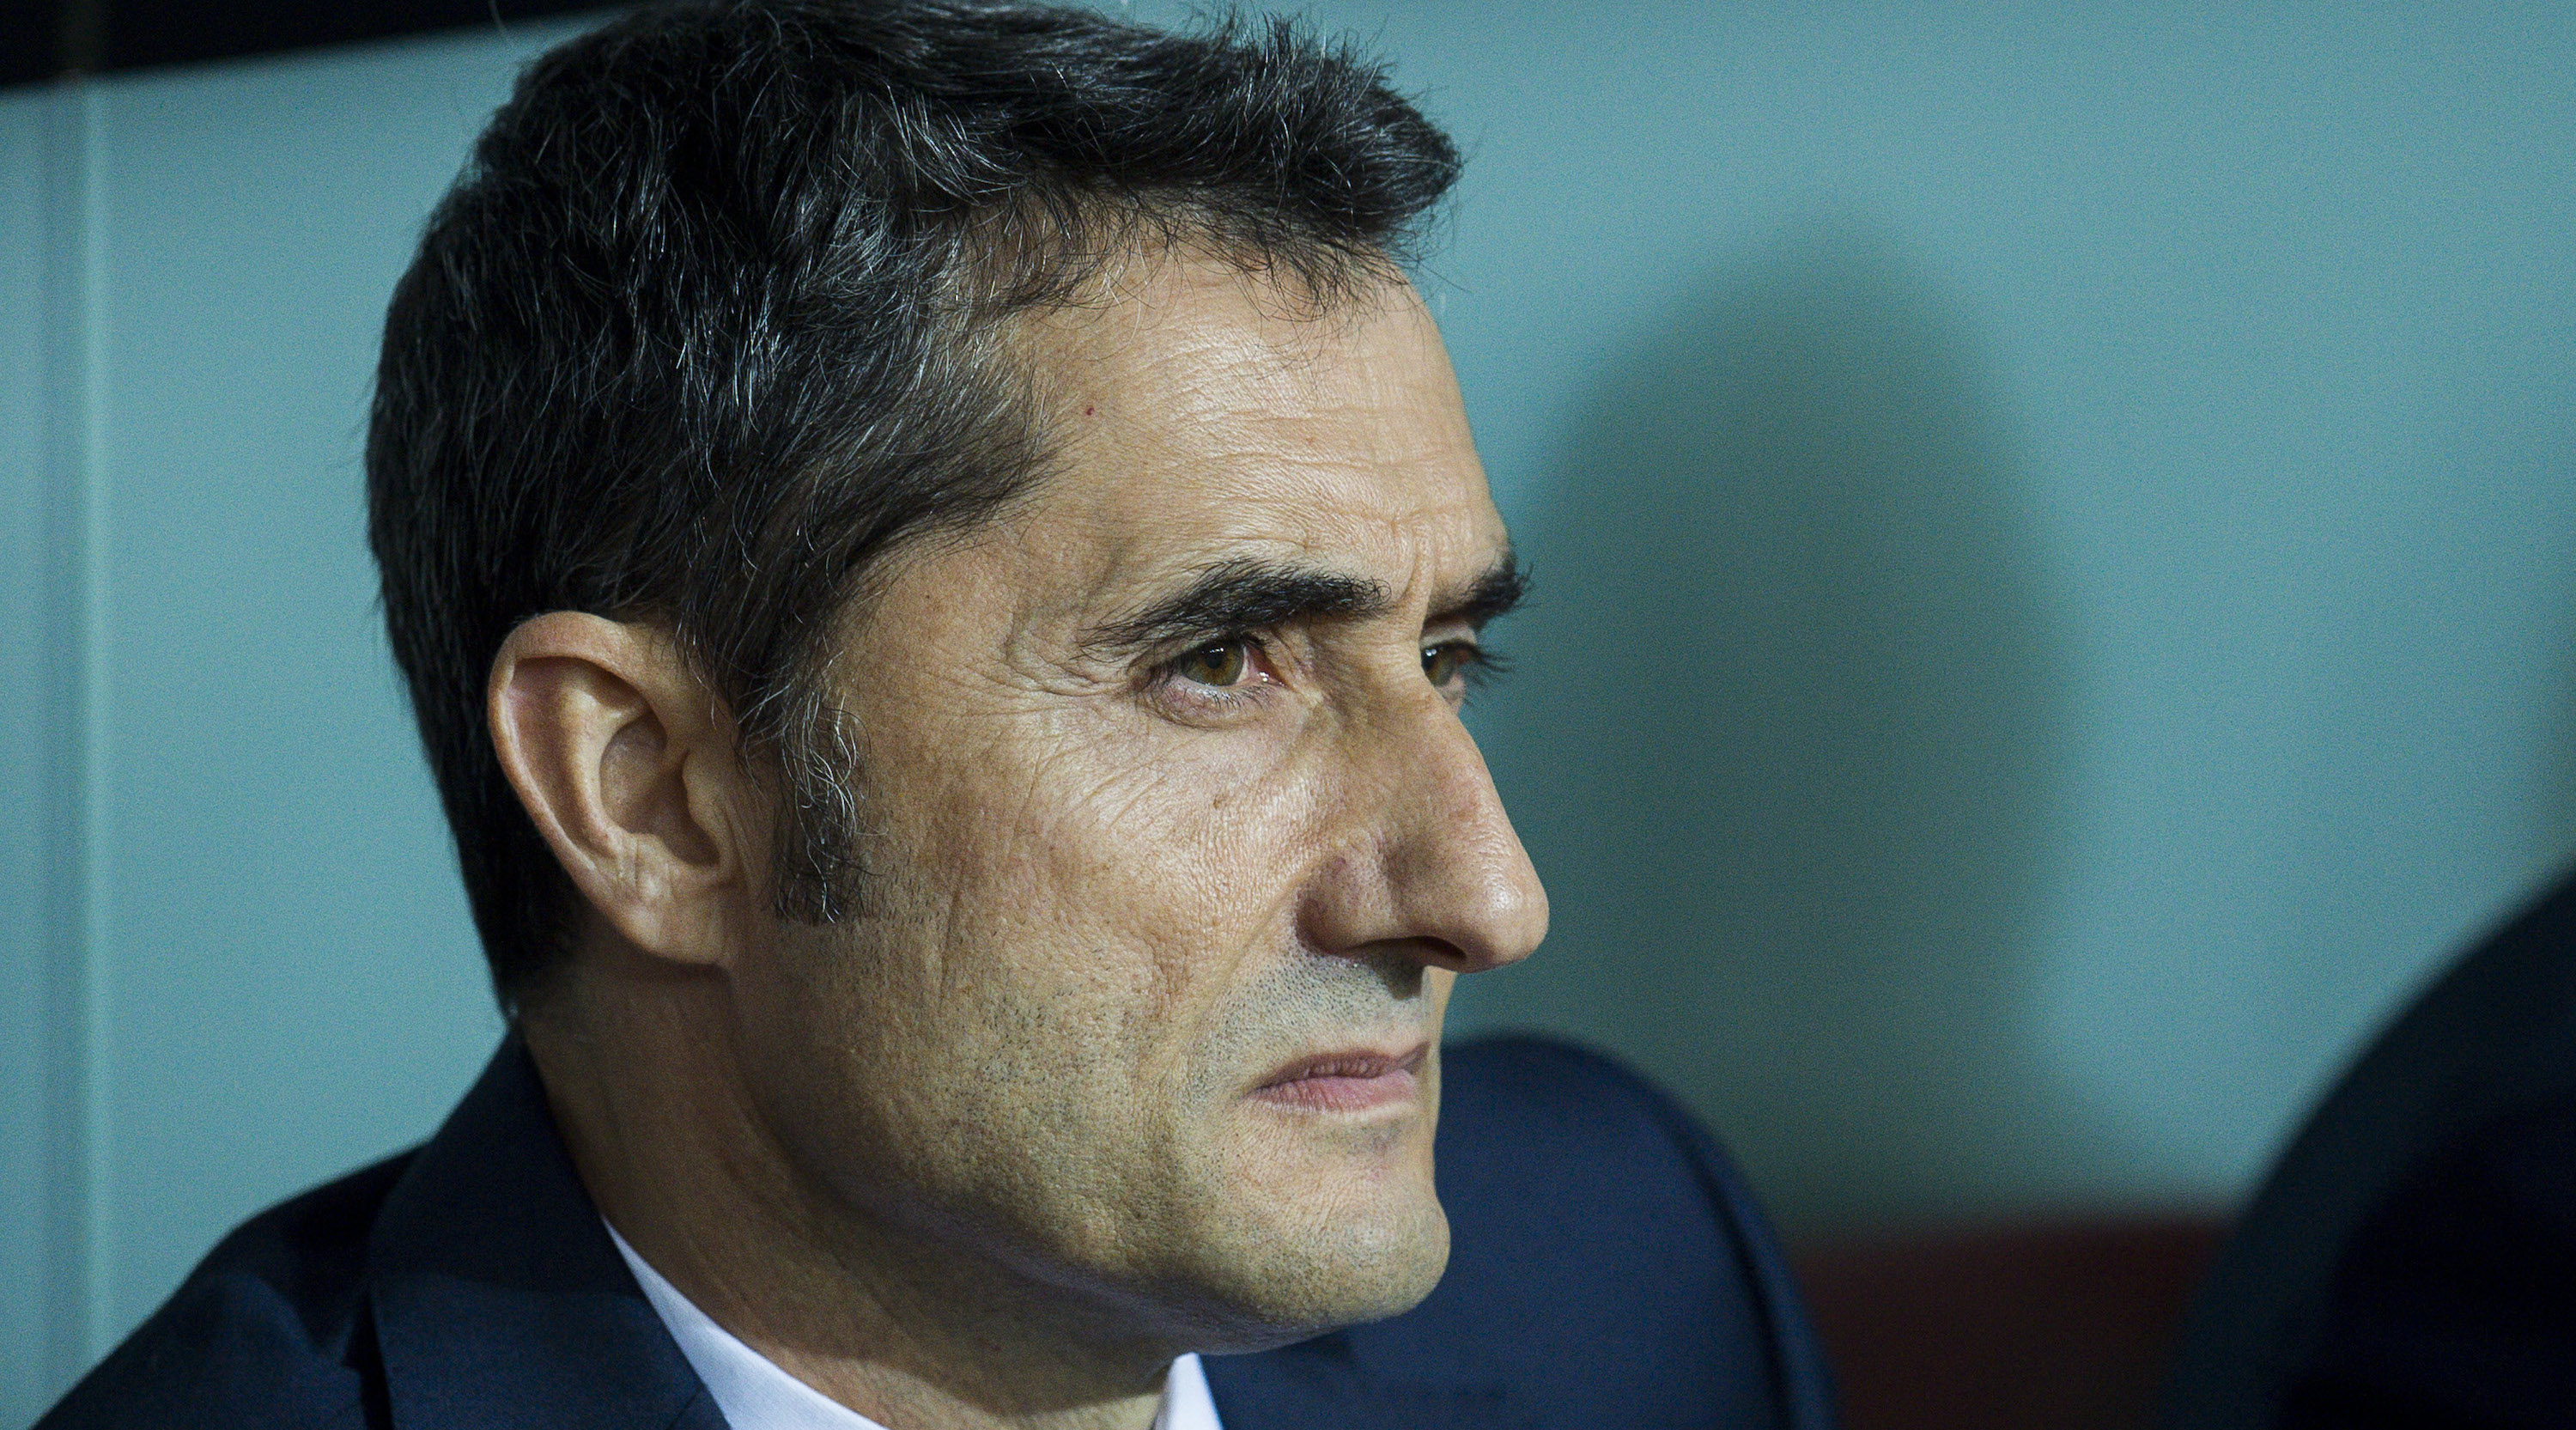 BILBAO, SPAIN - OCTOBER 28: Head coach Ernesto Valverde of FC Barcelona looks on prior to the start the La Liga match between Athletic Club Bilbao and FC Barcelona at San Mames Stadium on October 28, 2017 in Bilbao, Spain. (Photo by Juan Manuel Serrano Arce/Getty Images)